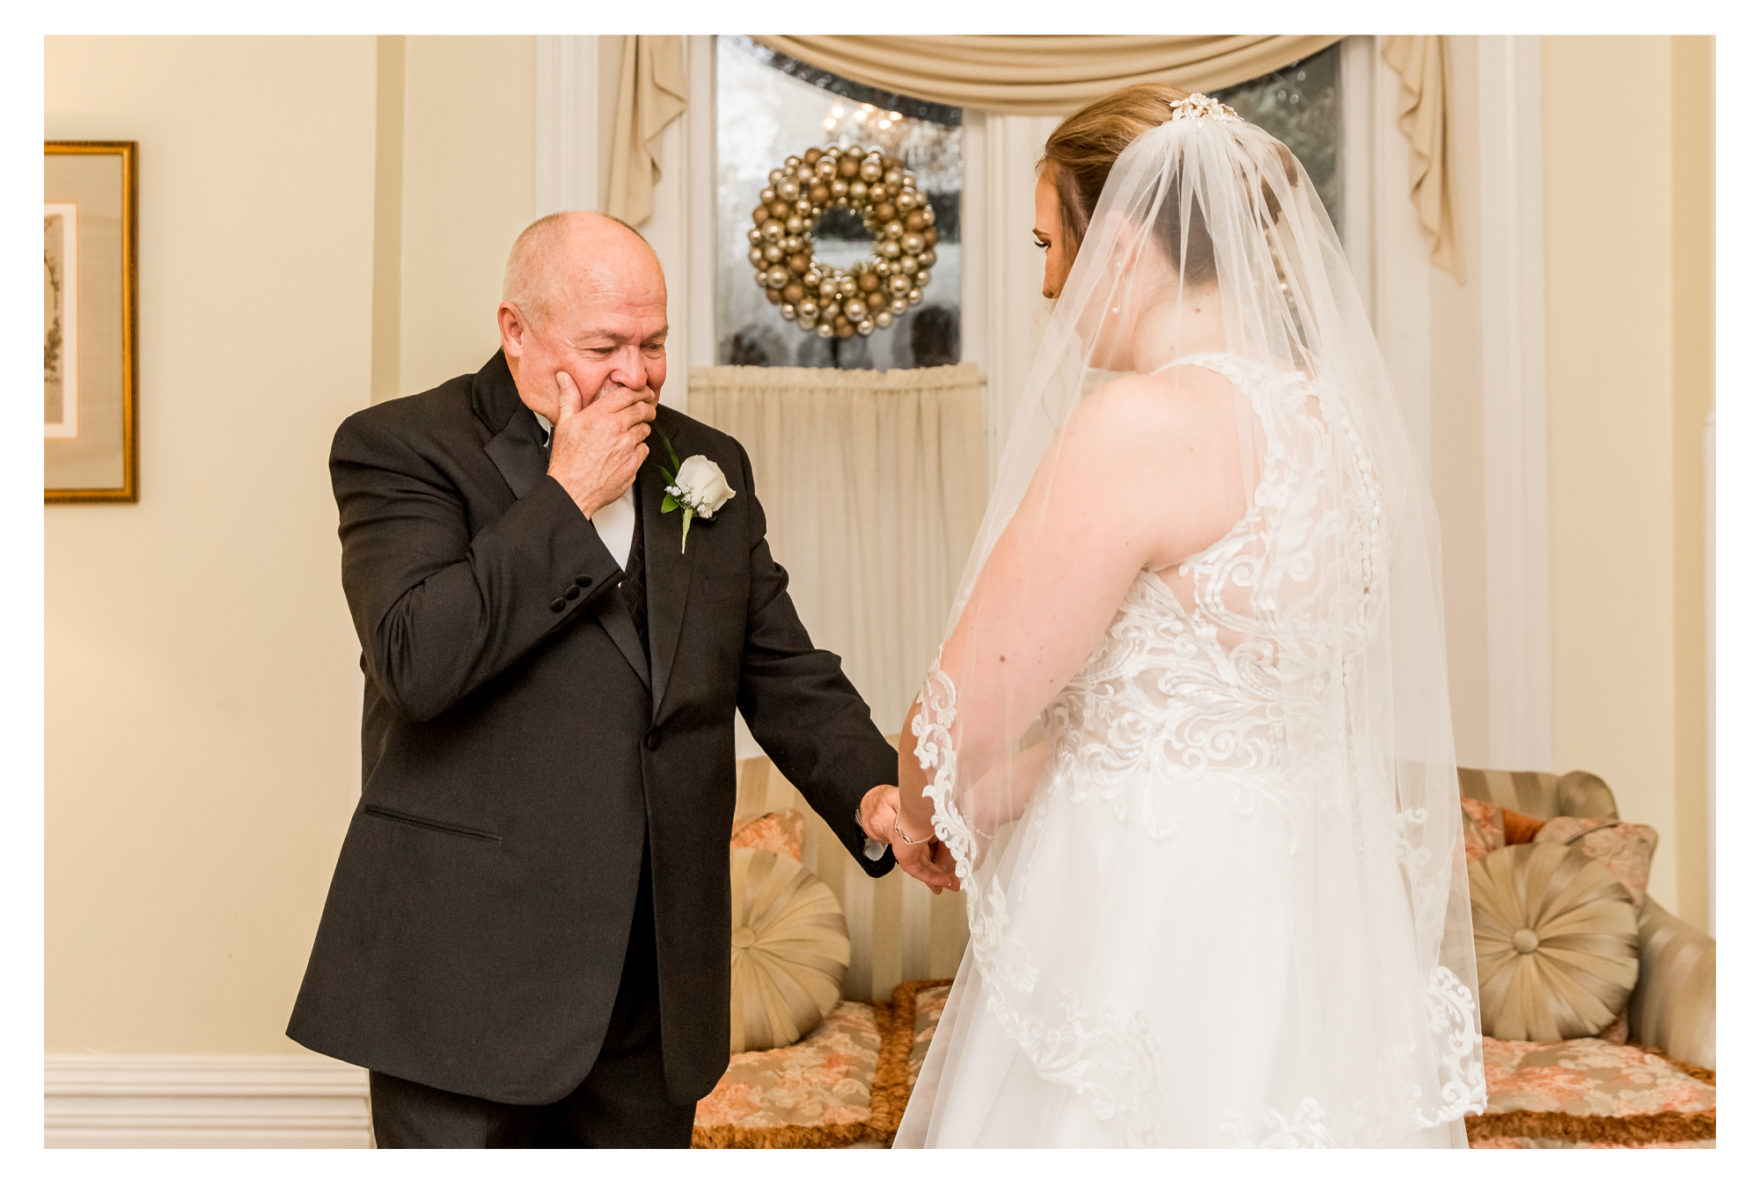 Cold Rainy Fall Wedding Day. Frederick Maryland Wedding Photographer. Frederick Weddings. Ceresville Mansion. Dreary Wedding Day